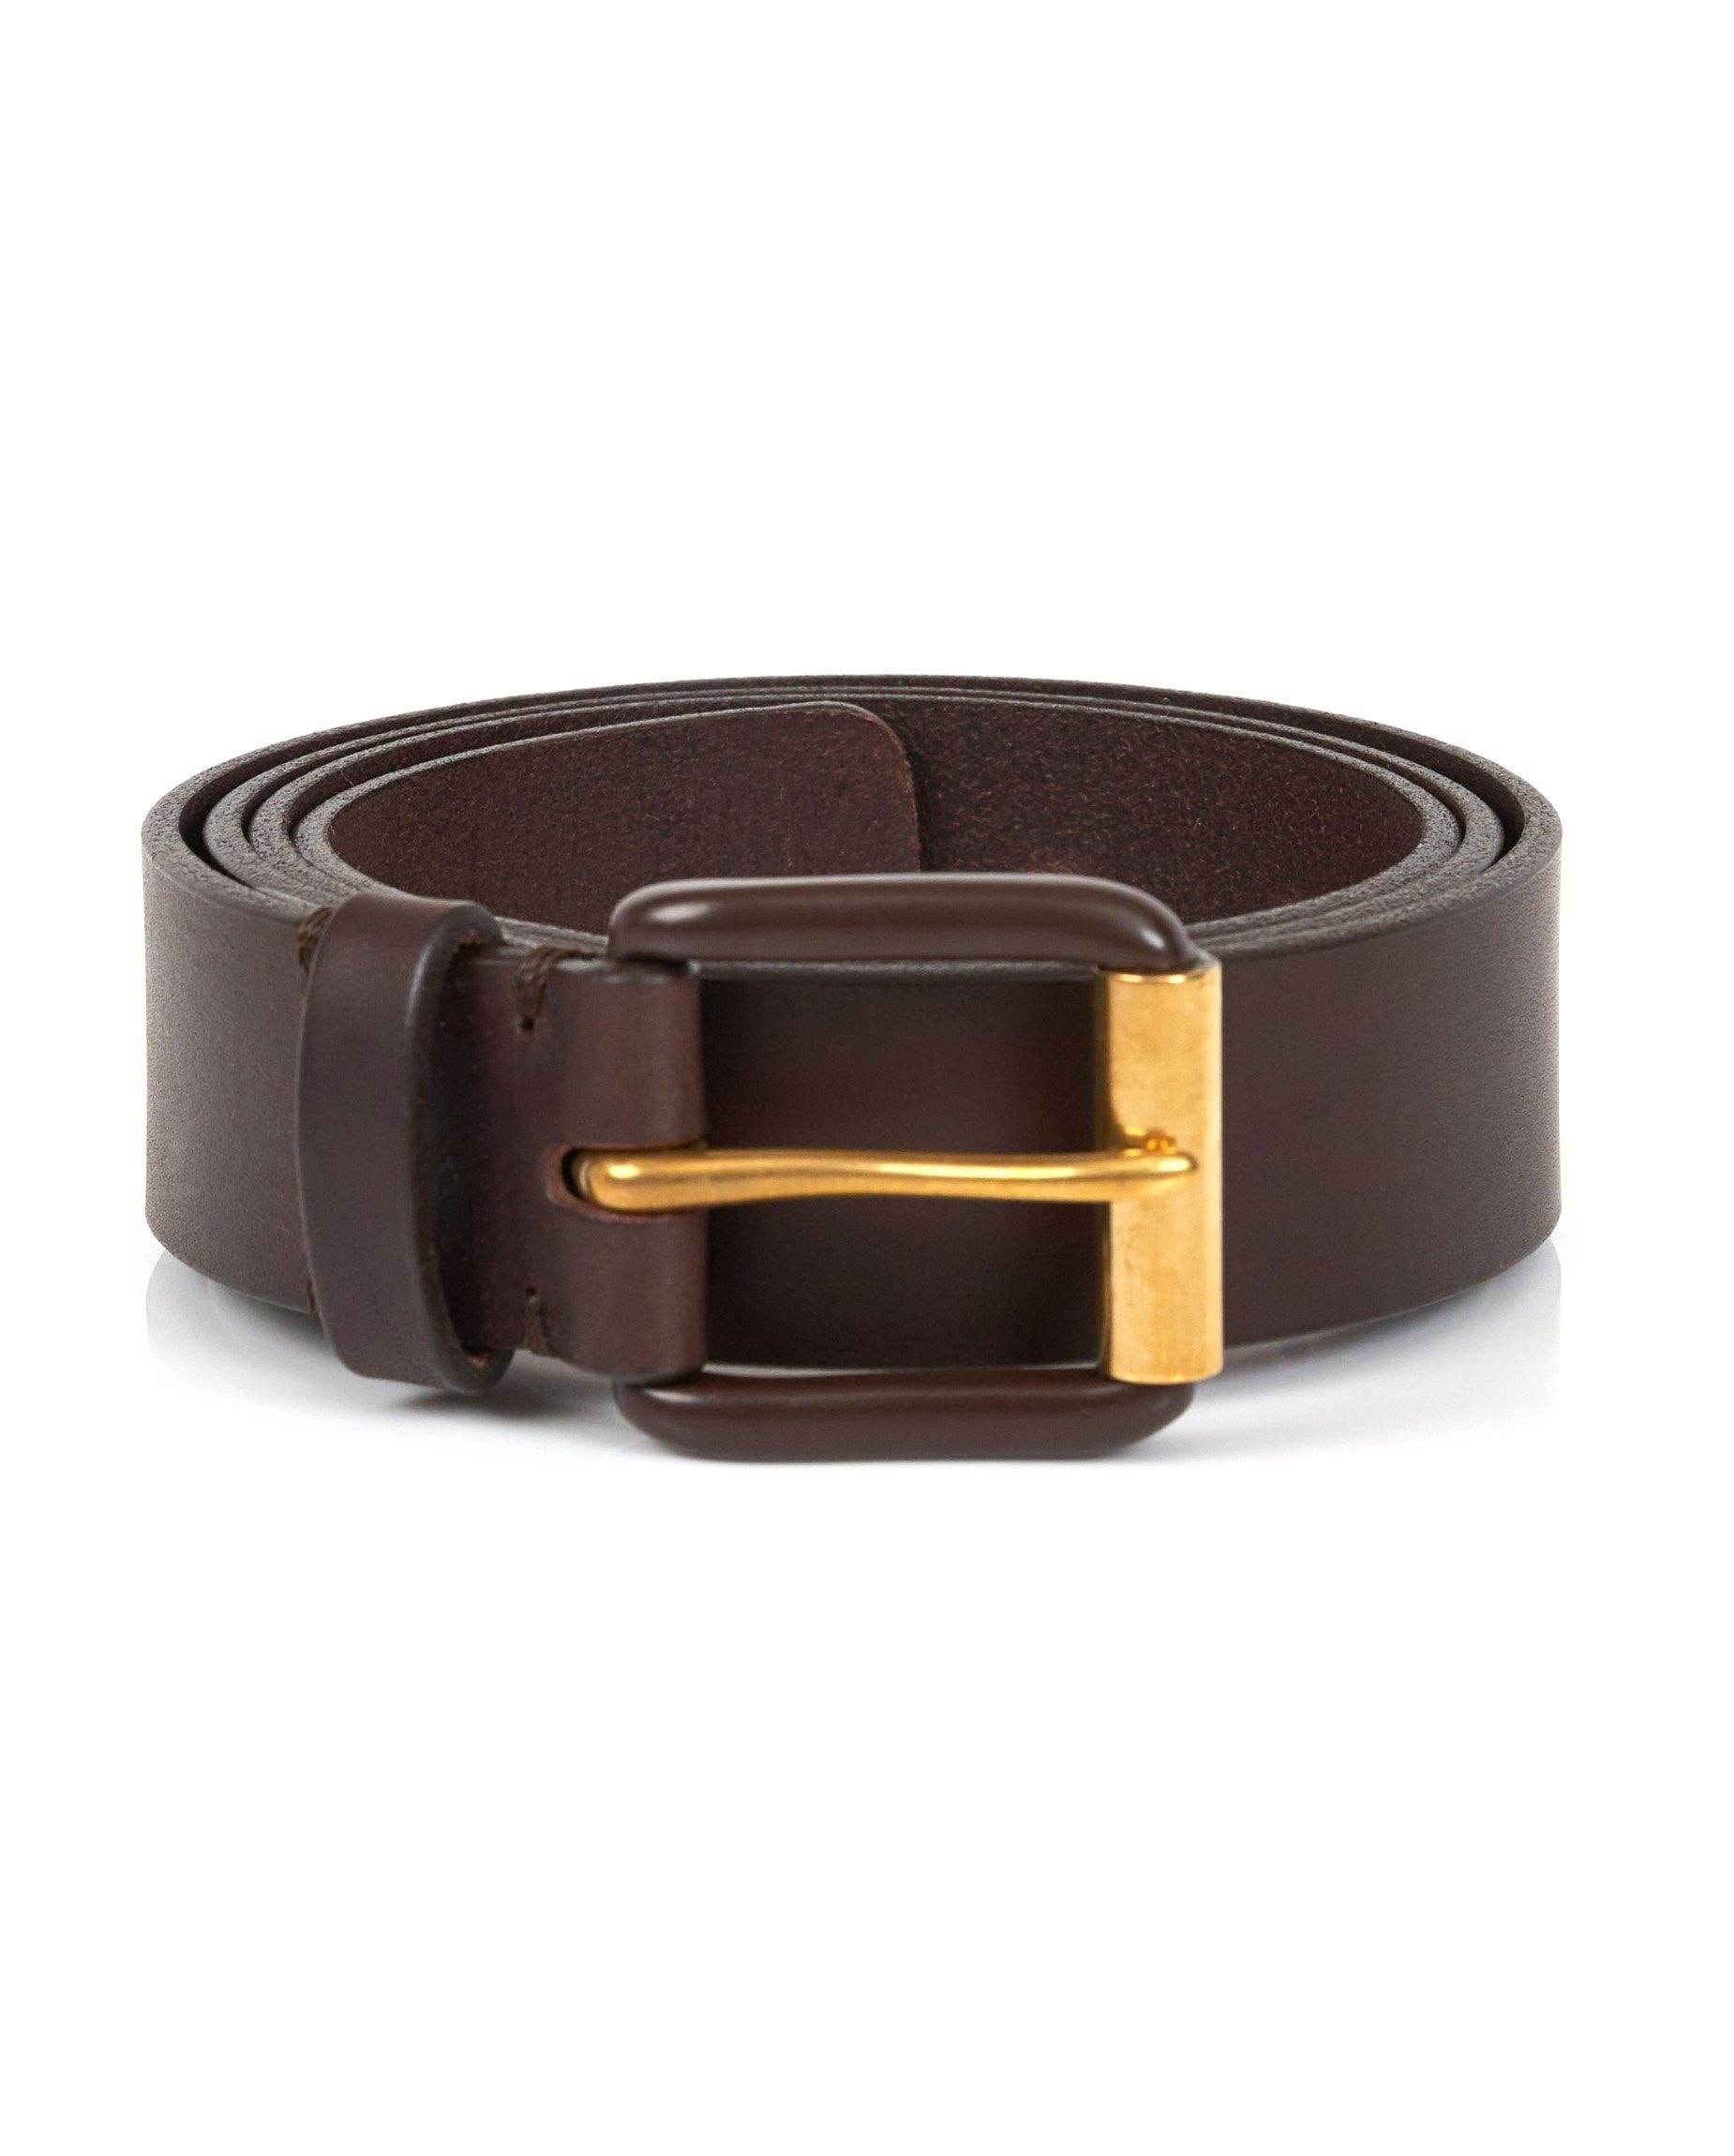 Modernist Exposed - Chocolate Brown / Brown - Debonair